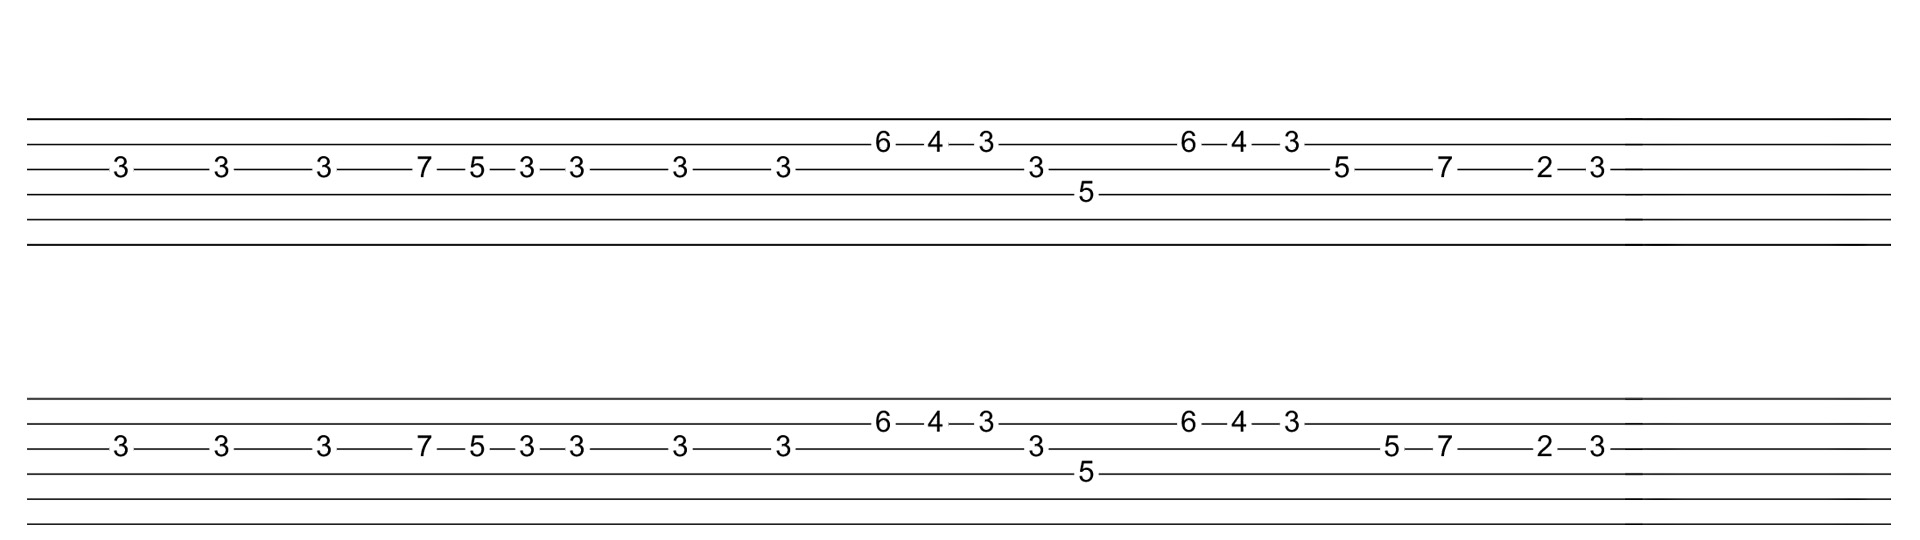 Christina perri a thousand years tabs kfir ochaion tabs for my electric guitar cover for the song a thousand years by christina perri hexwebz Gallery